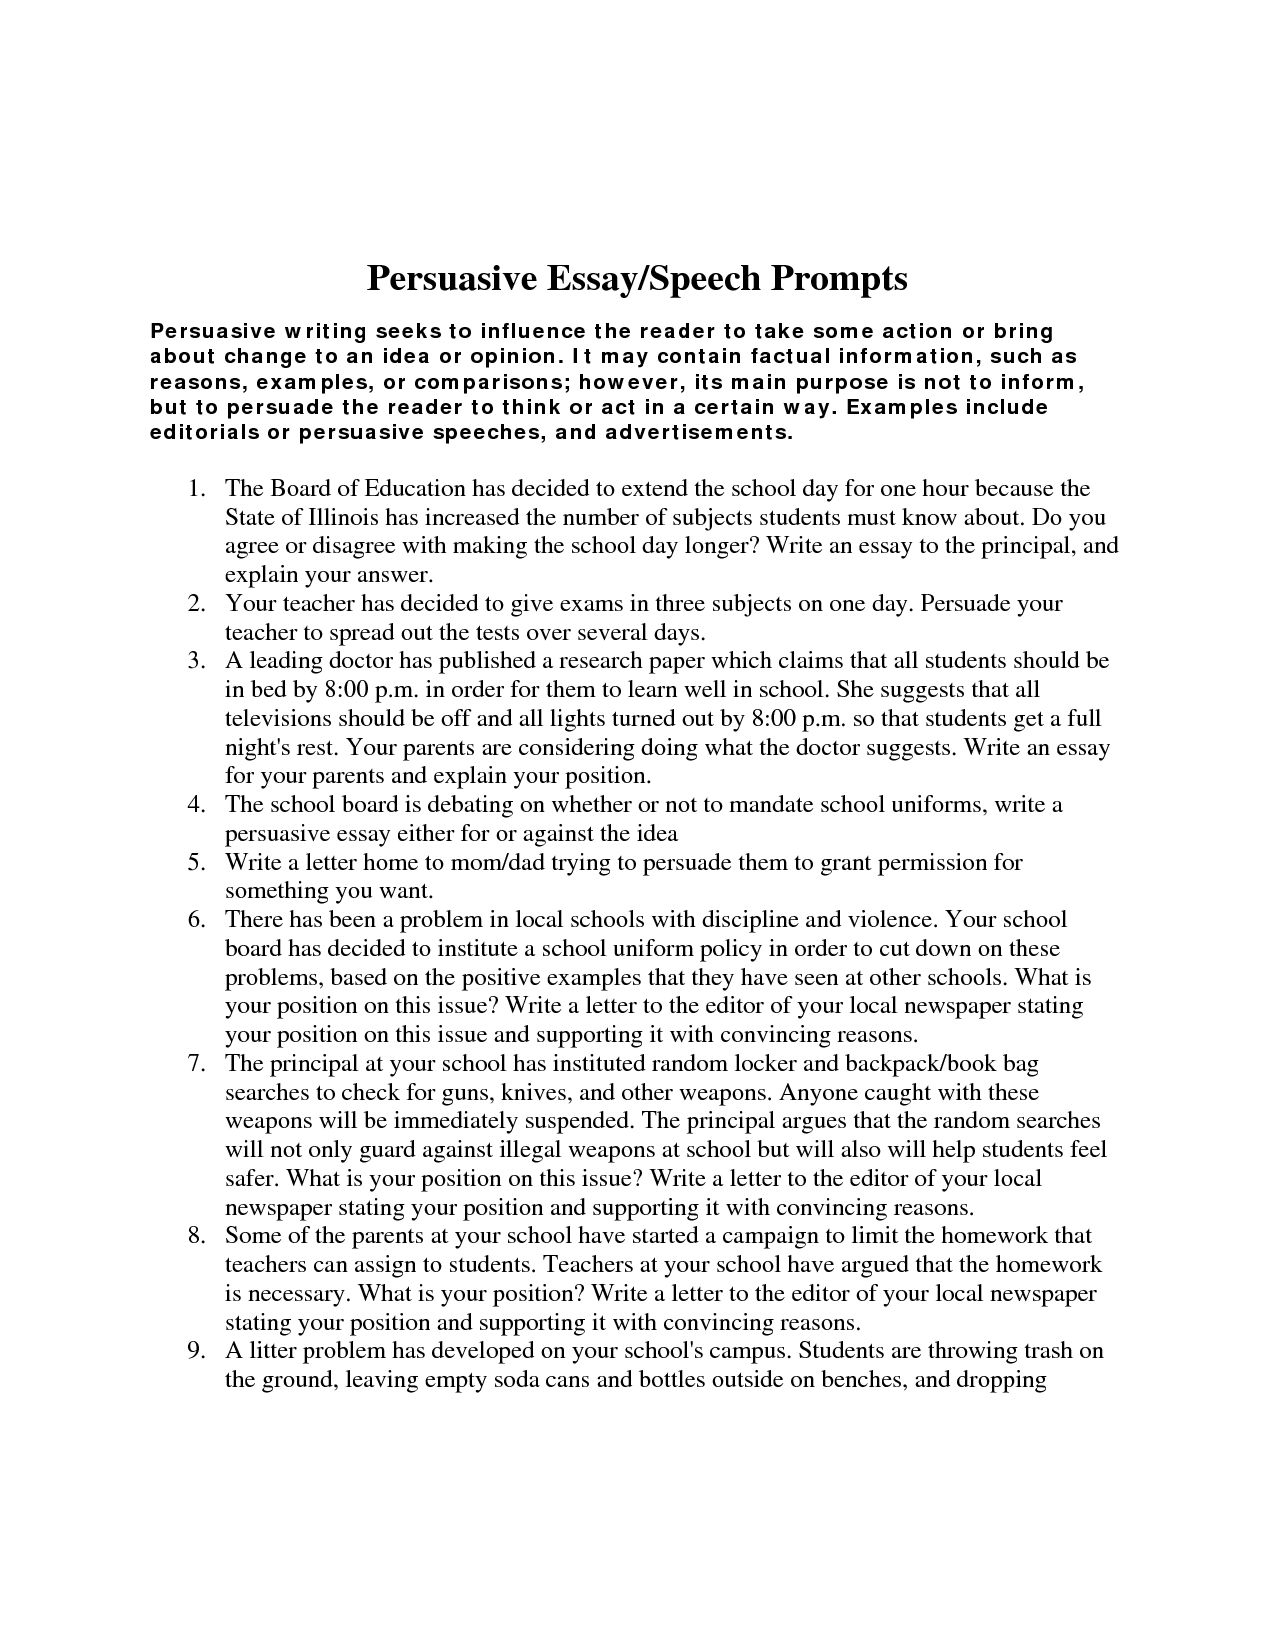 persuasive and argumentative writing  argumentative essay  persuasive and argumentative writing